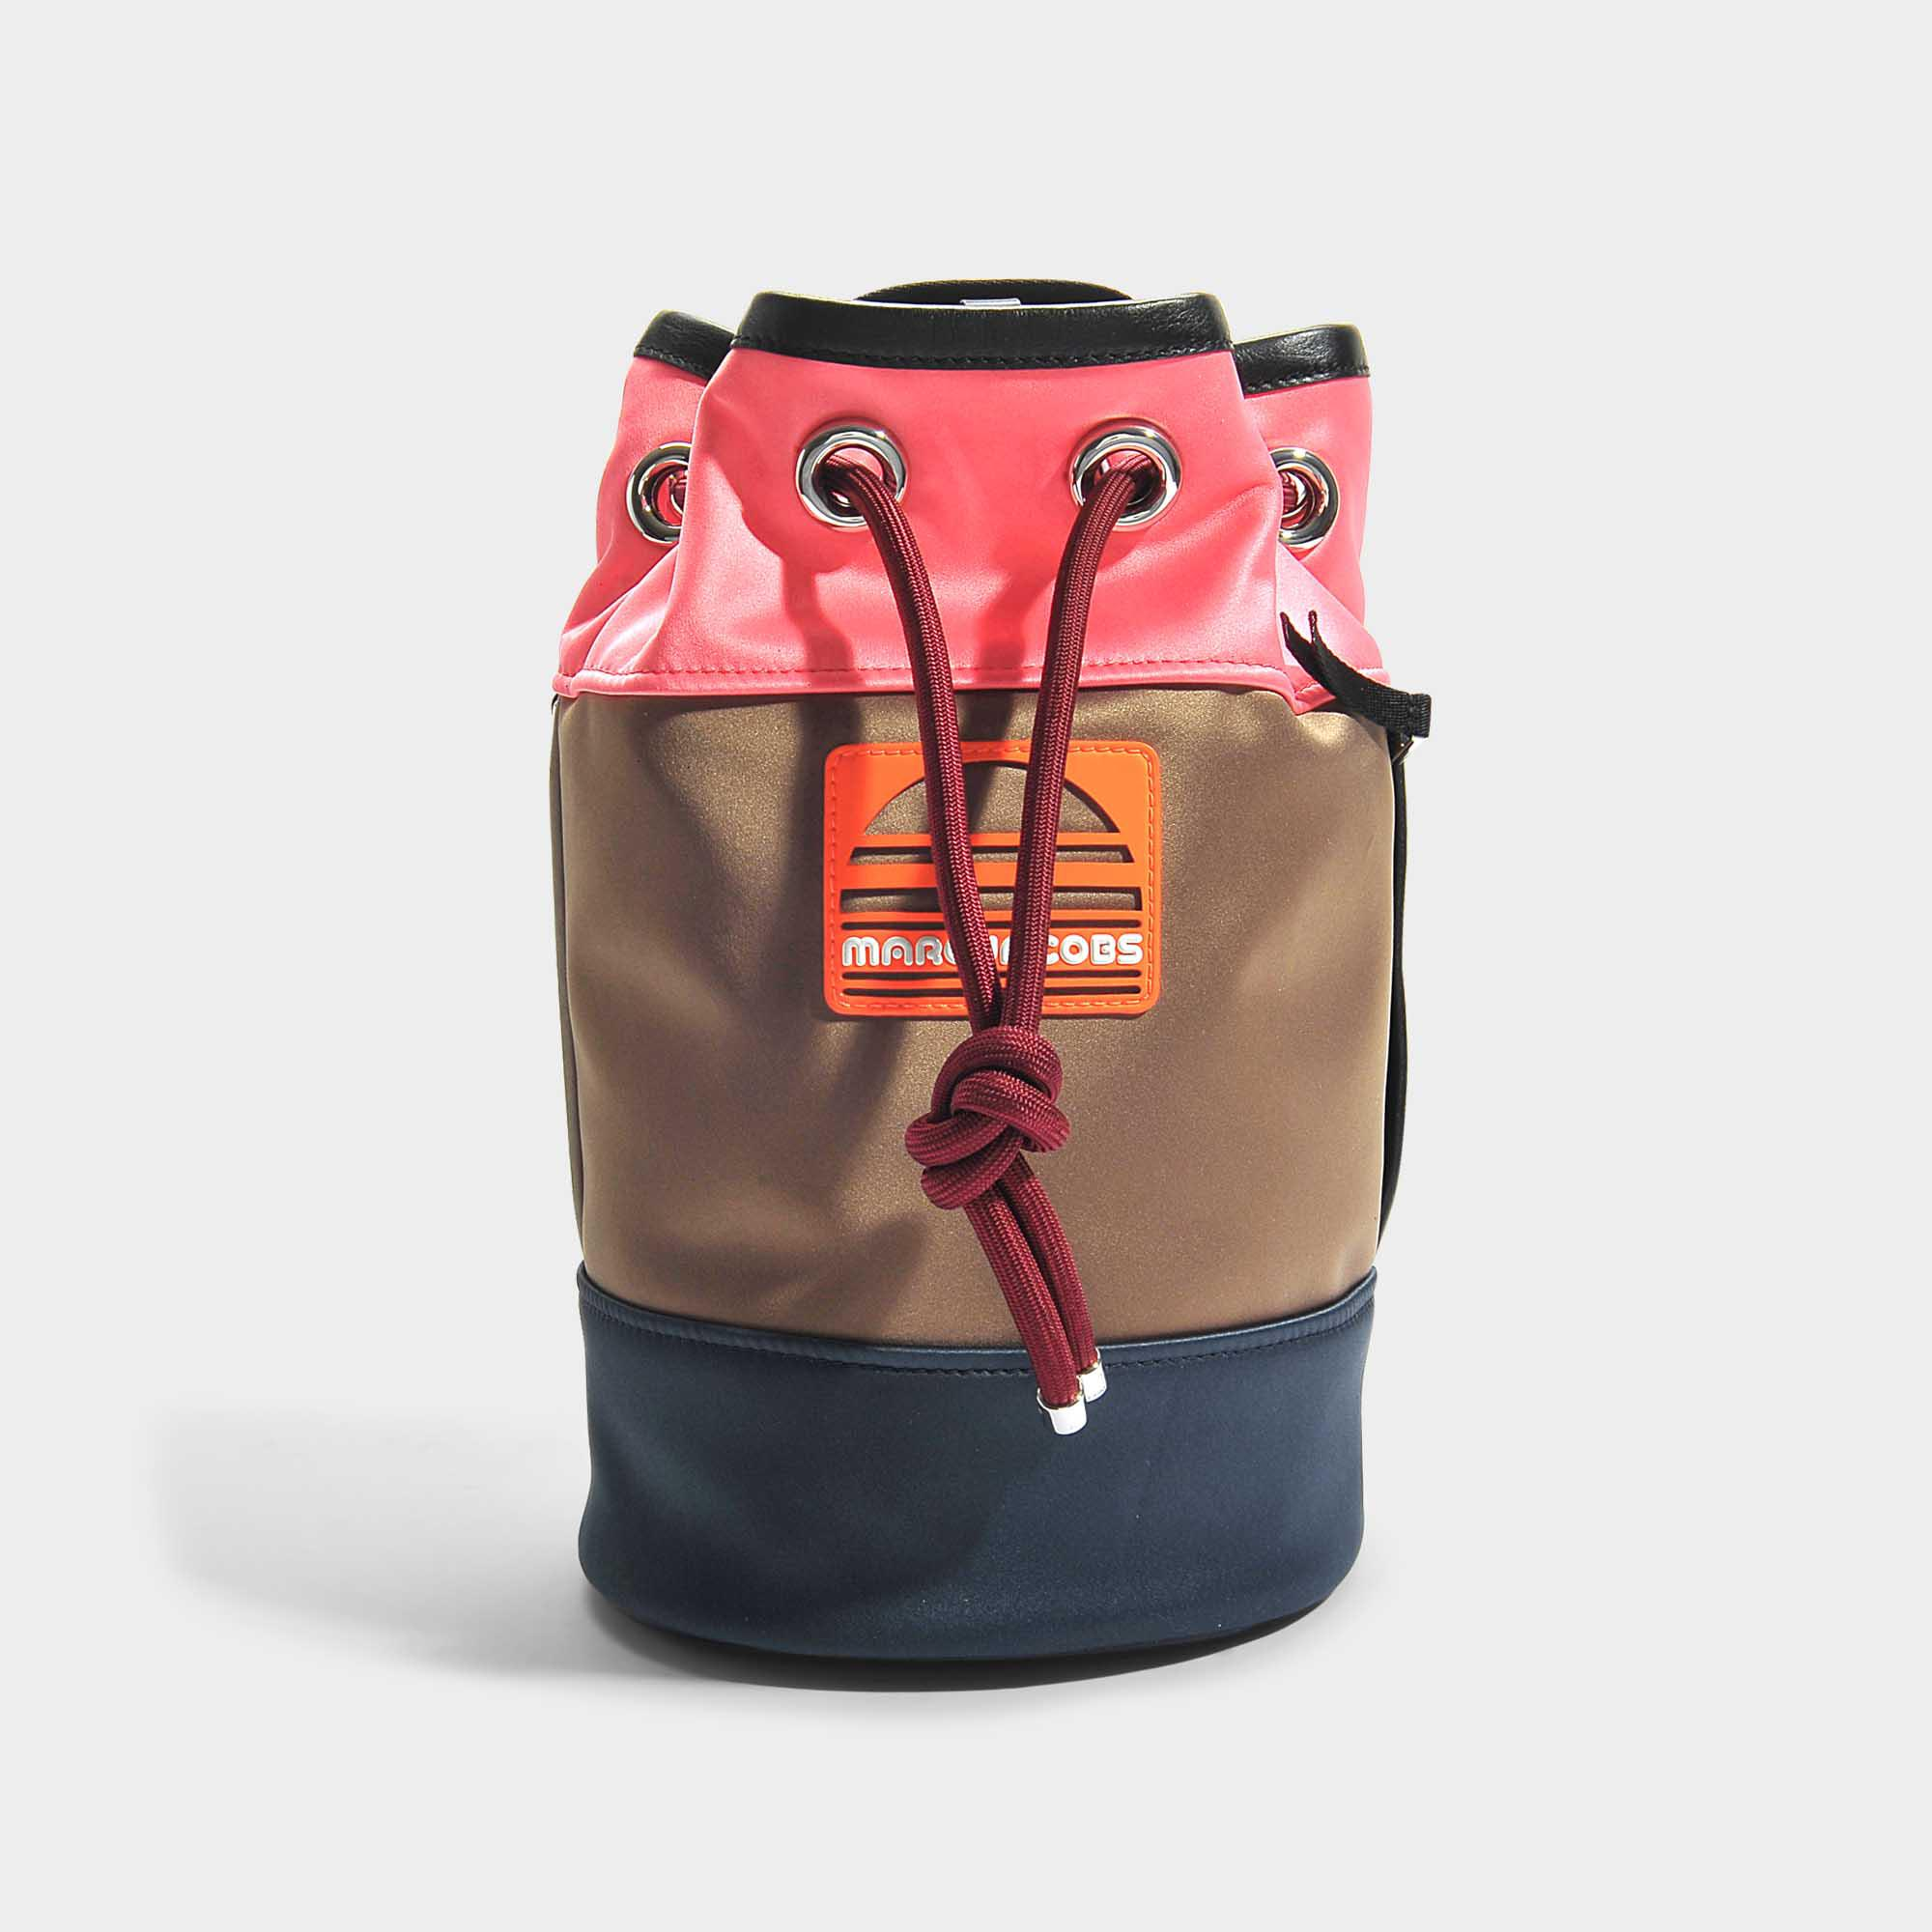 Small Sport Sling Bag in Coral Polyester Marc Jacobs eHhymi